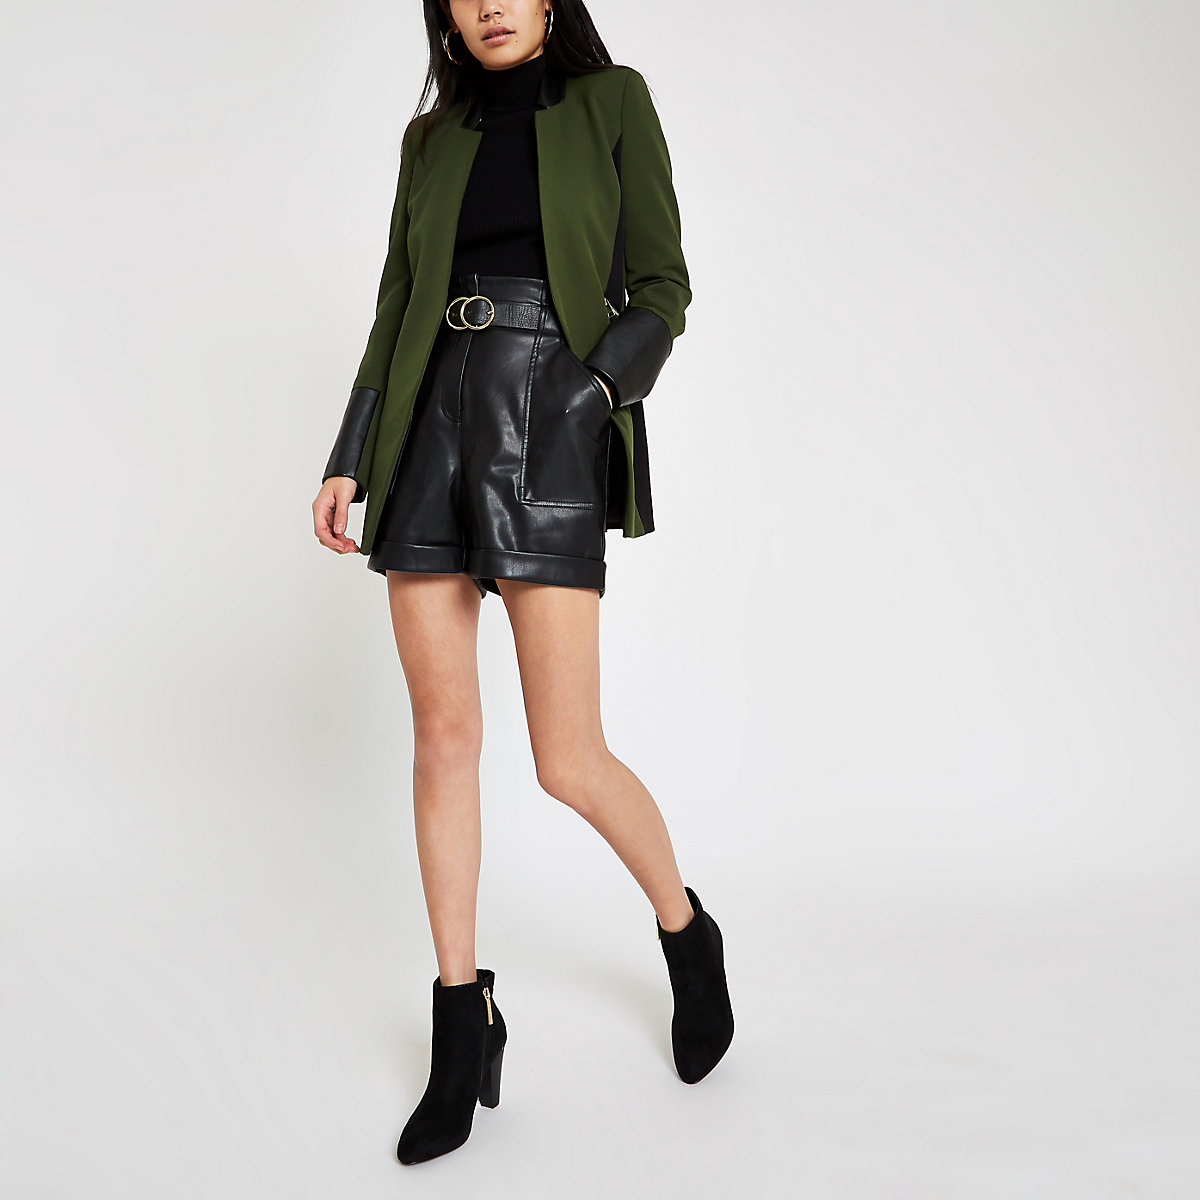 Khaki green faux leather trim blazer